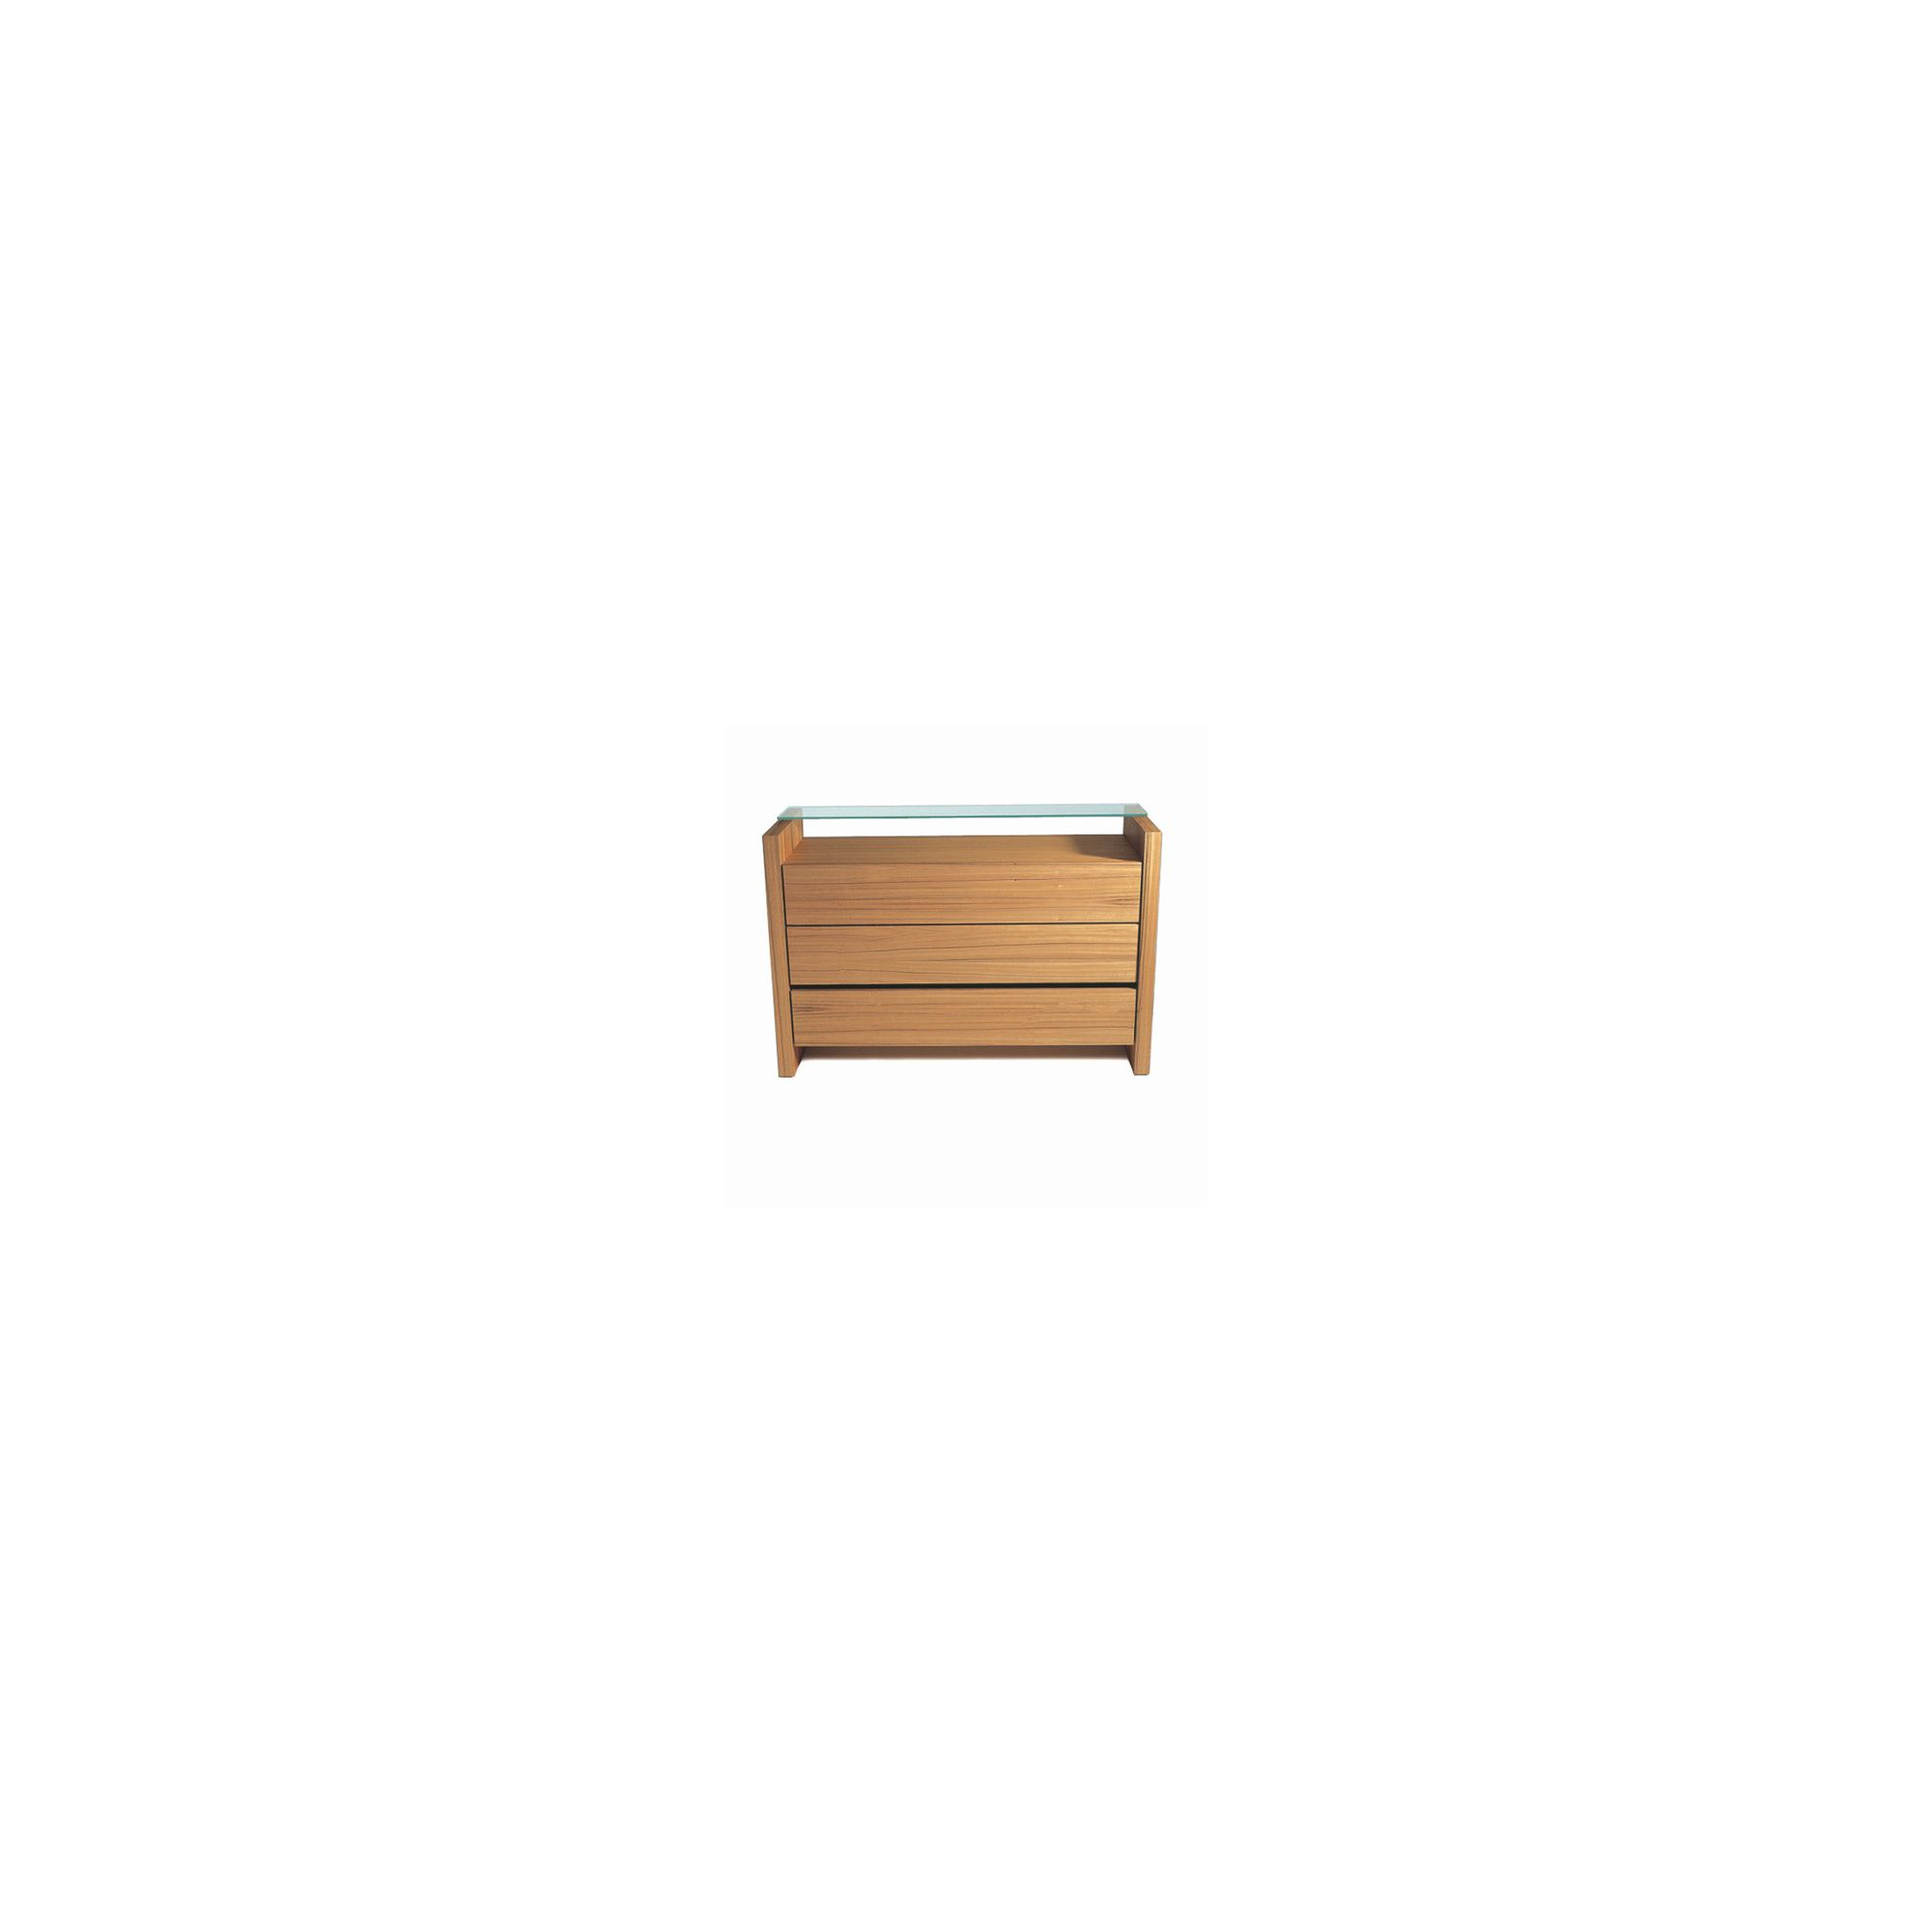 Gillmore Space Brompton Three Drawers Chest in Tigerwood at Tesco Direct